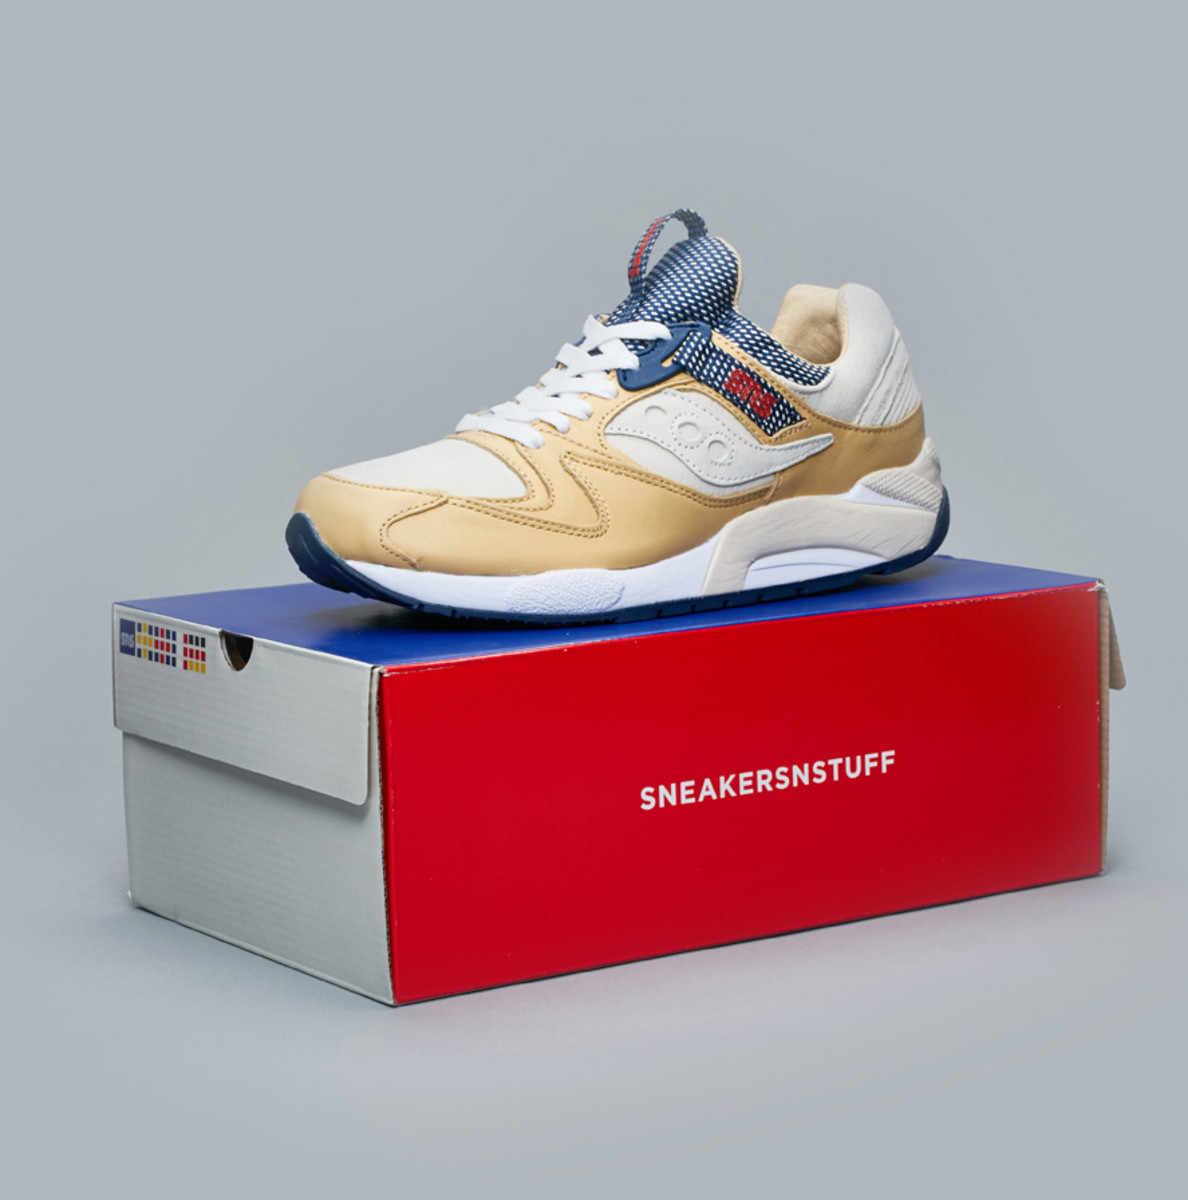 sneakersnstuff-saucony-grid-9000-business-class-04